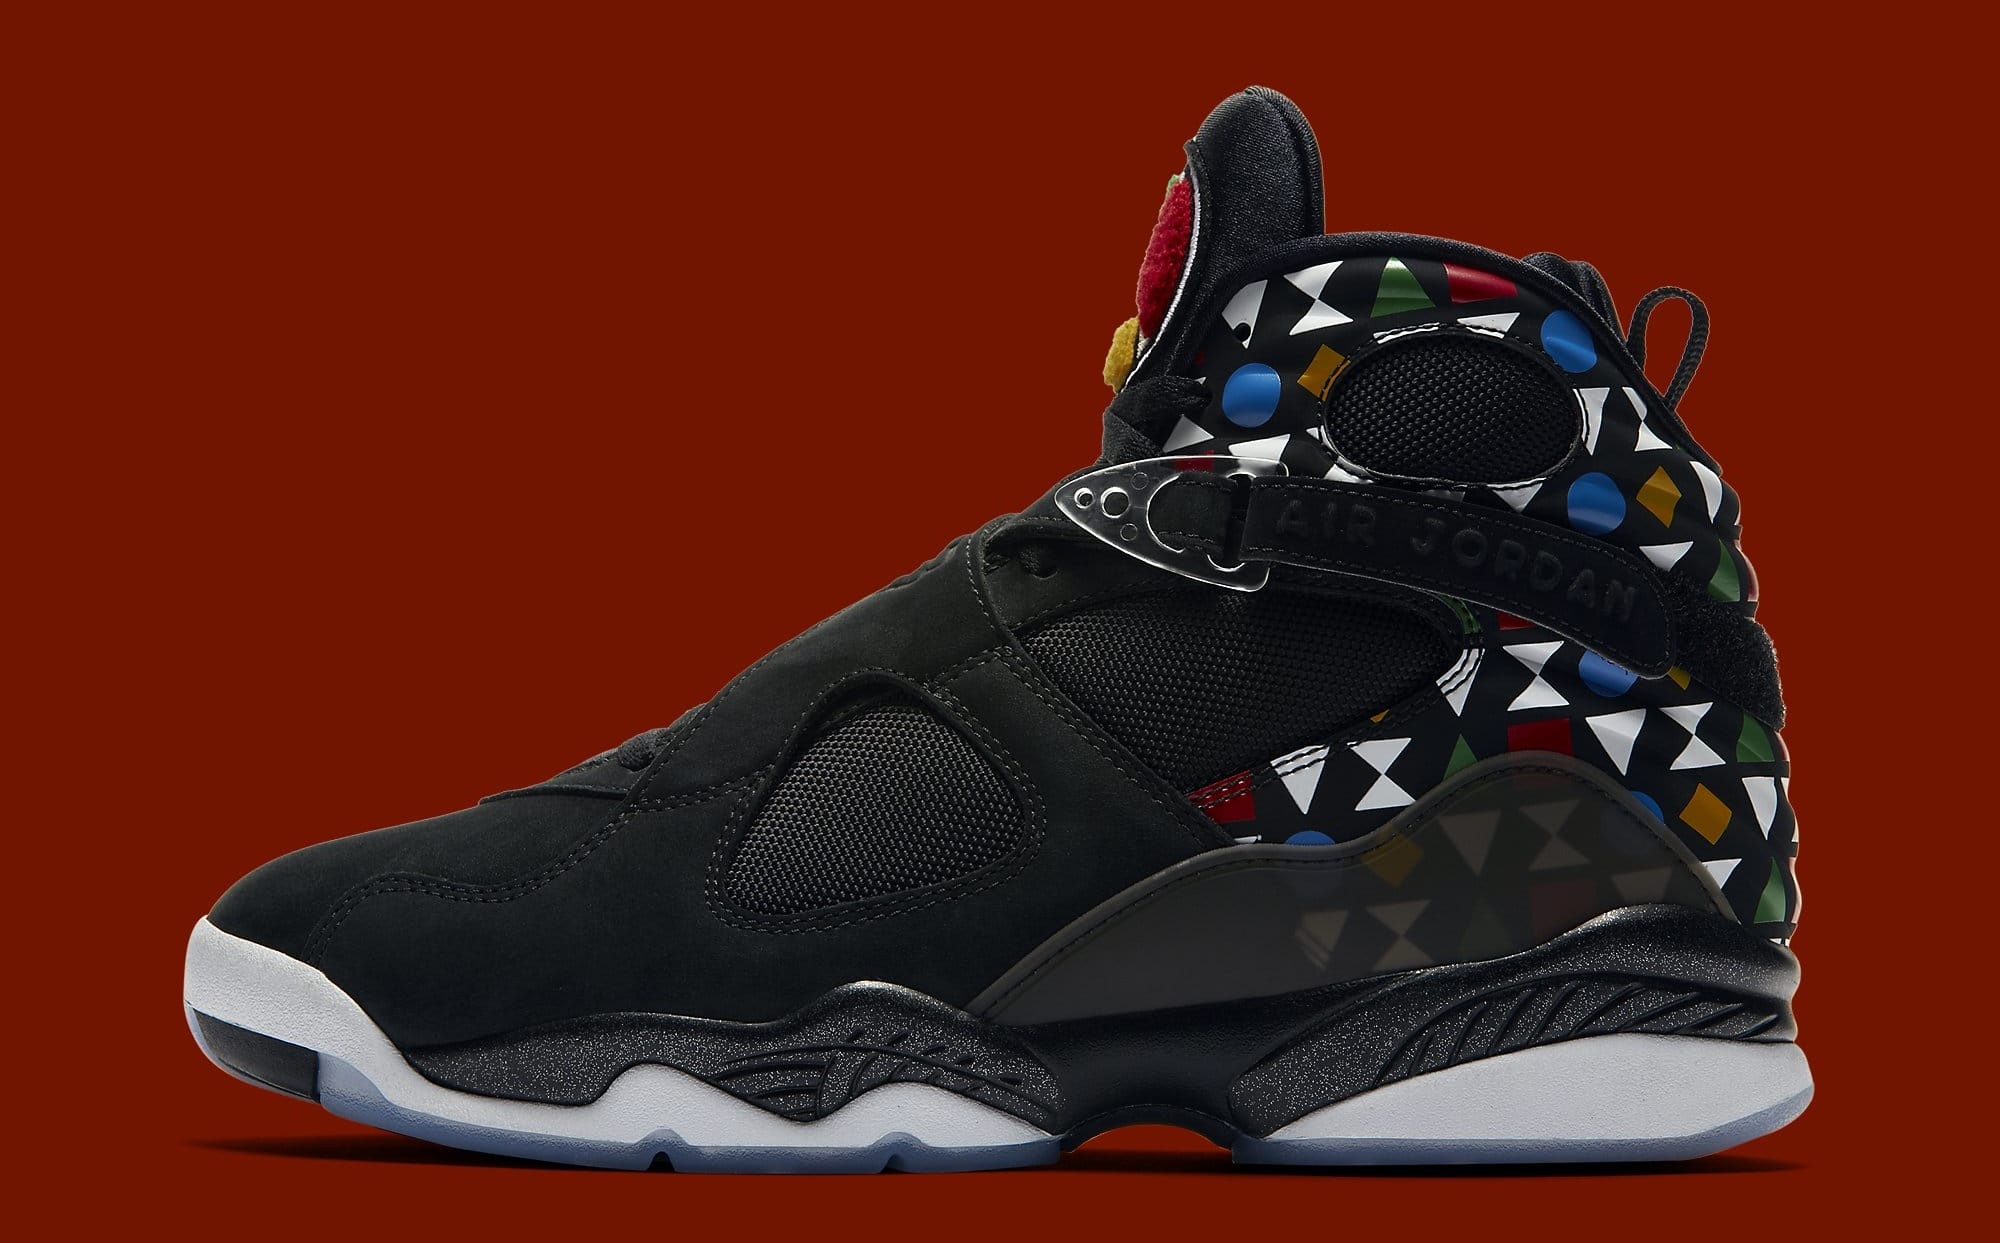 new arrival 2685a c5887 Air Jordan 8 'Quai 54' Release Date June 15, 2019 | Sole ...